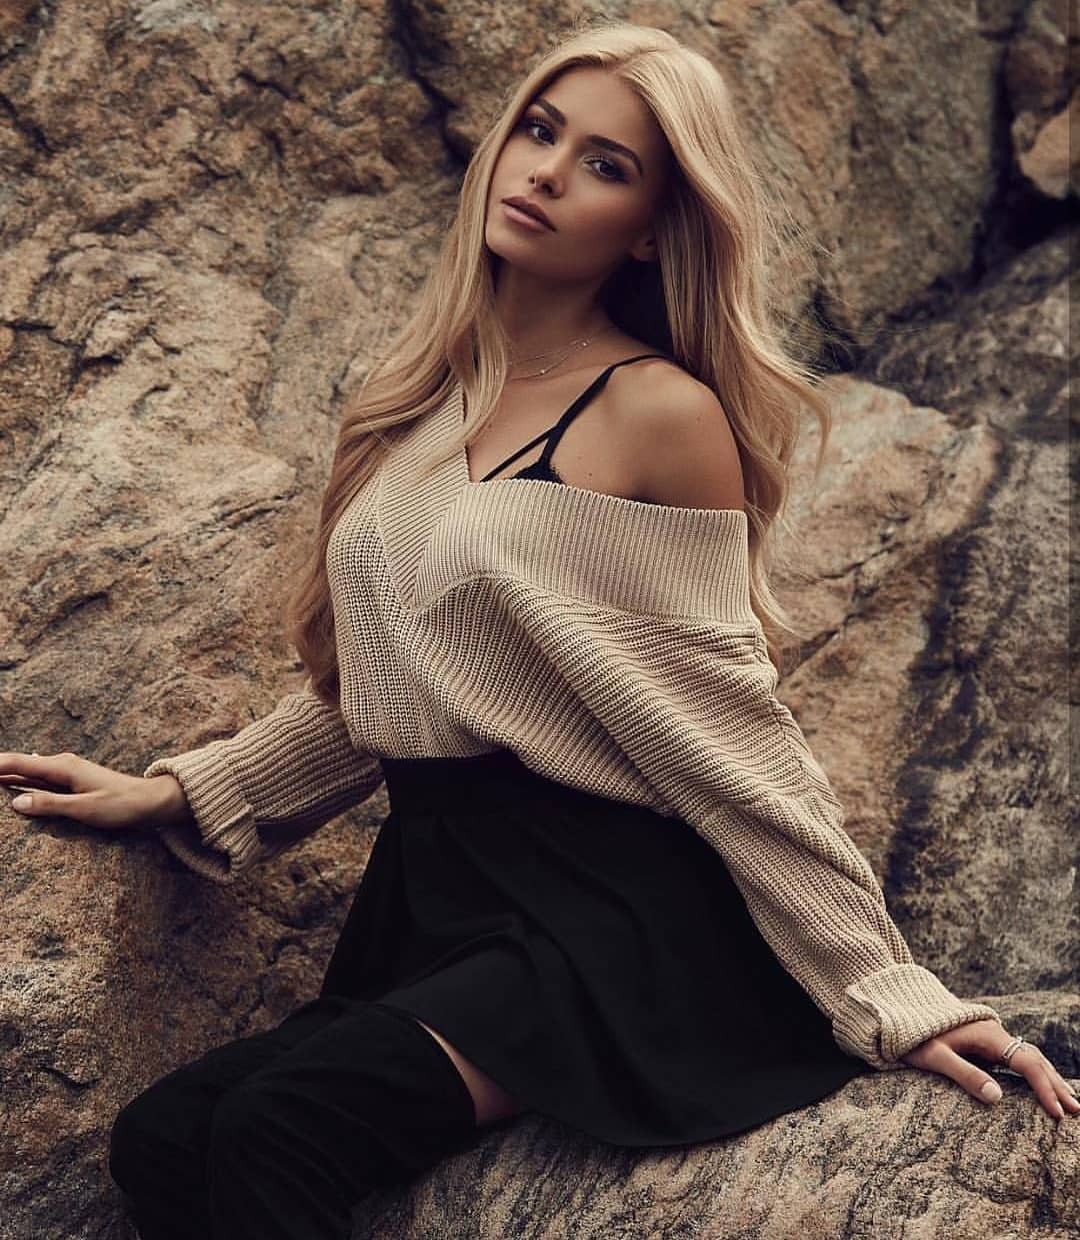 Off-Shoulder Beige Sweater With Black Flared Skirt And OTK Boots For Fall 2019